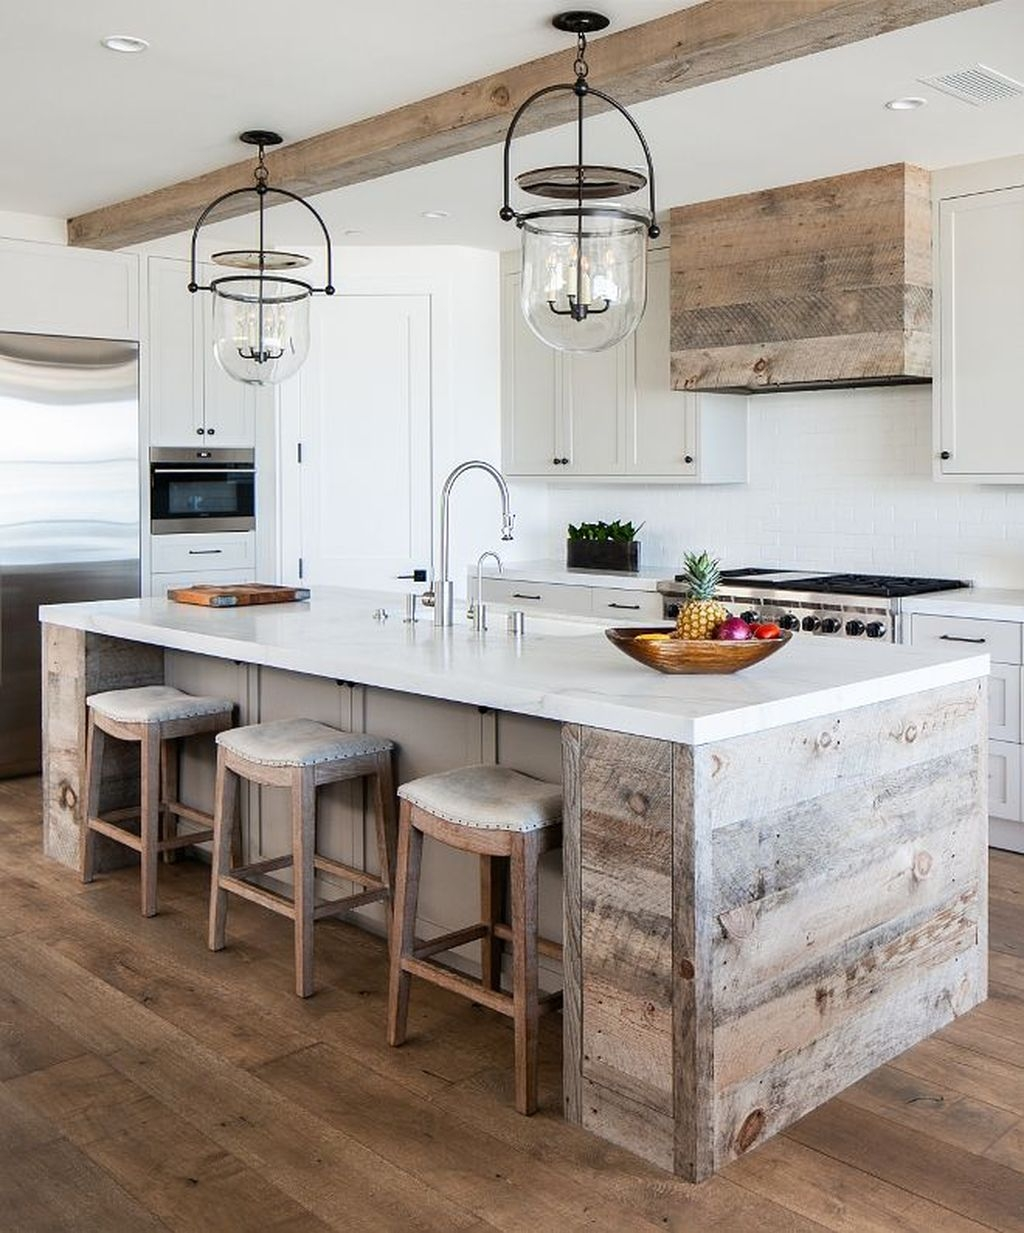 44 Awesome Rustic Kitchen Island Design Ideas - PIMPHOMEE